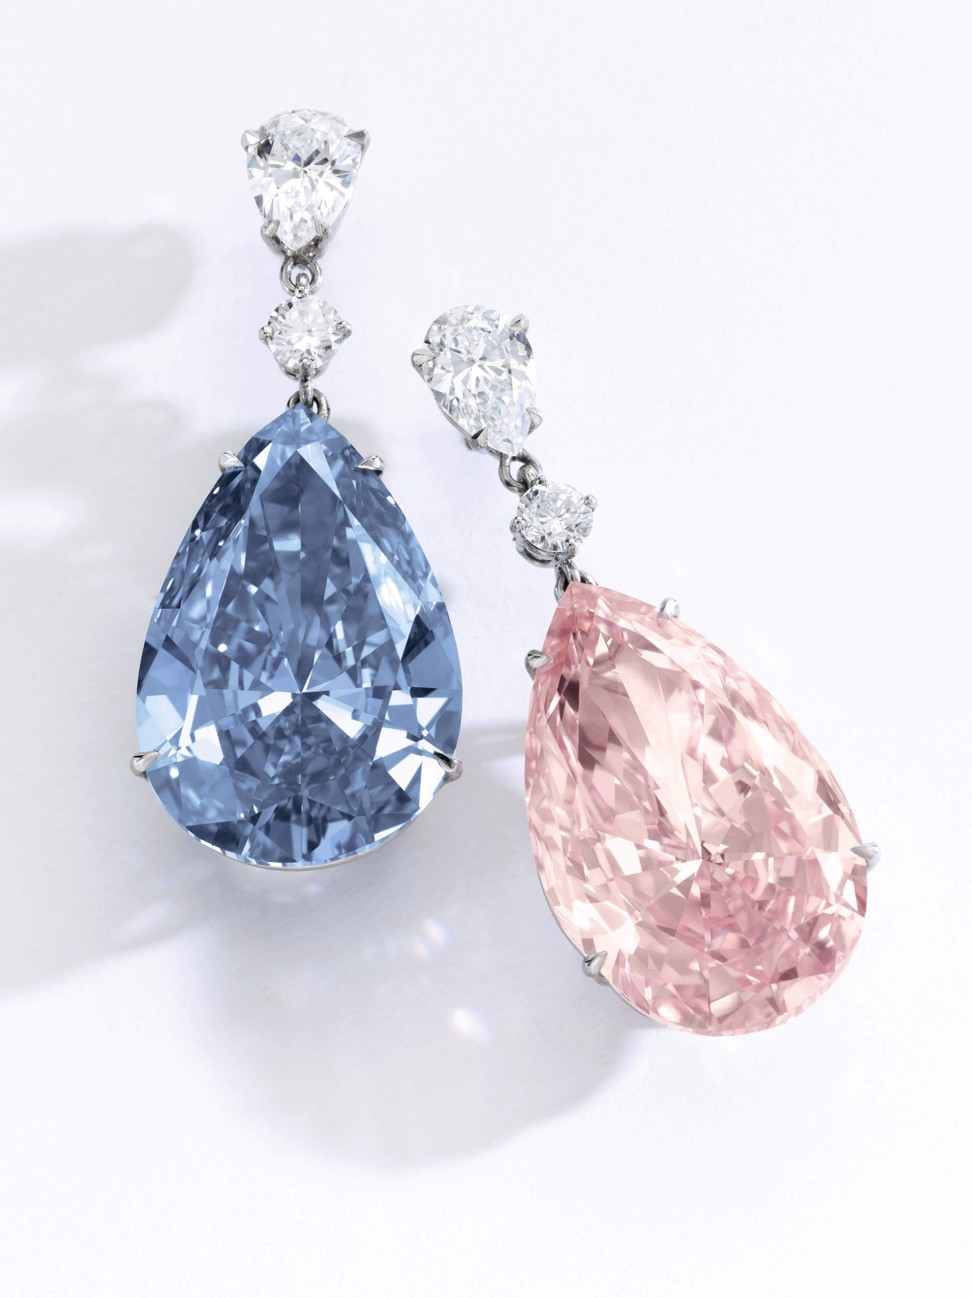 Sotheby S Magnificent Jewels And Le Will Feature The Apollo Artemis Diamonds Which Together Form Most Valuable Earrings Ever To Be